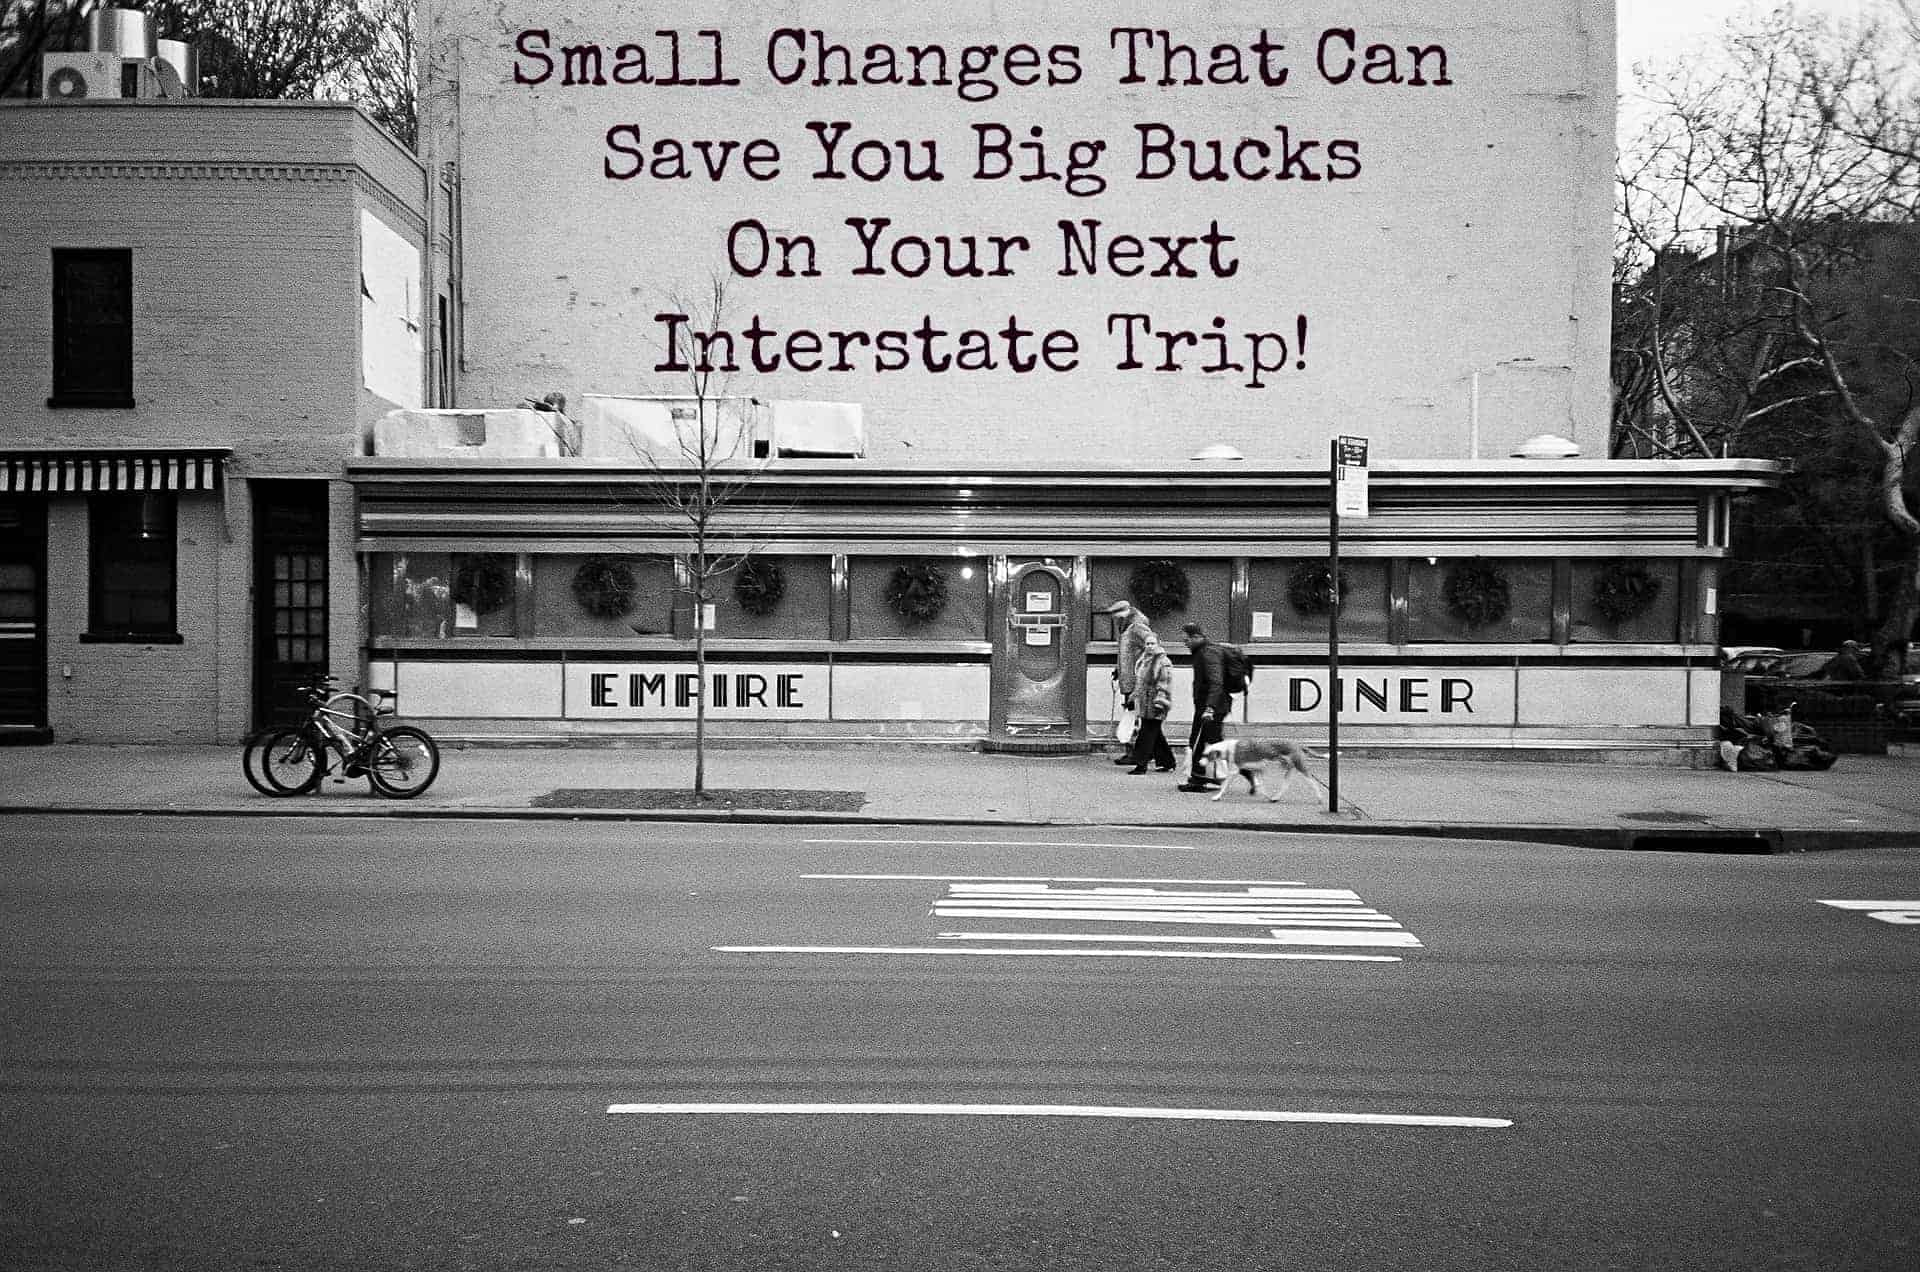 Small Changes That Can Save You Big Bucks On Your Next Interstate Trip!